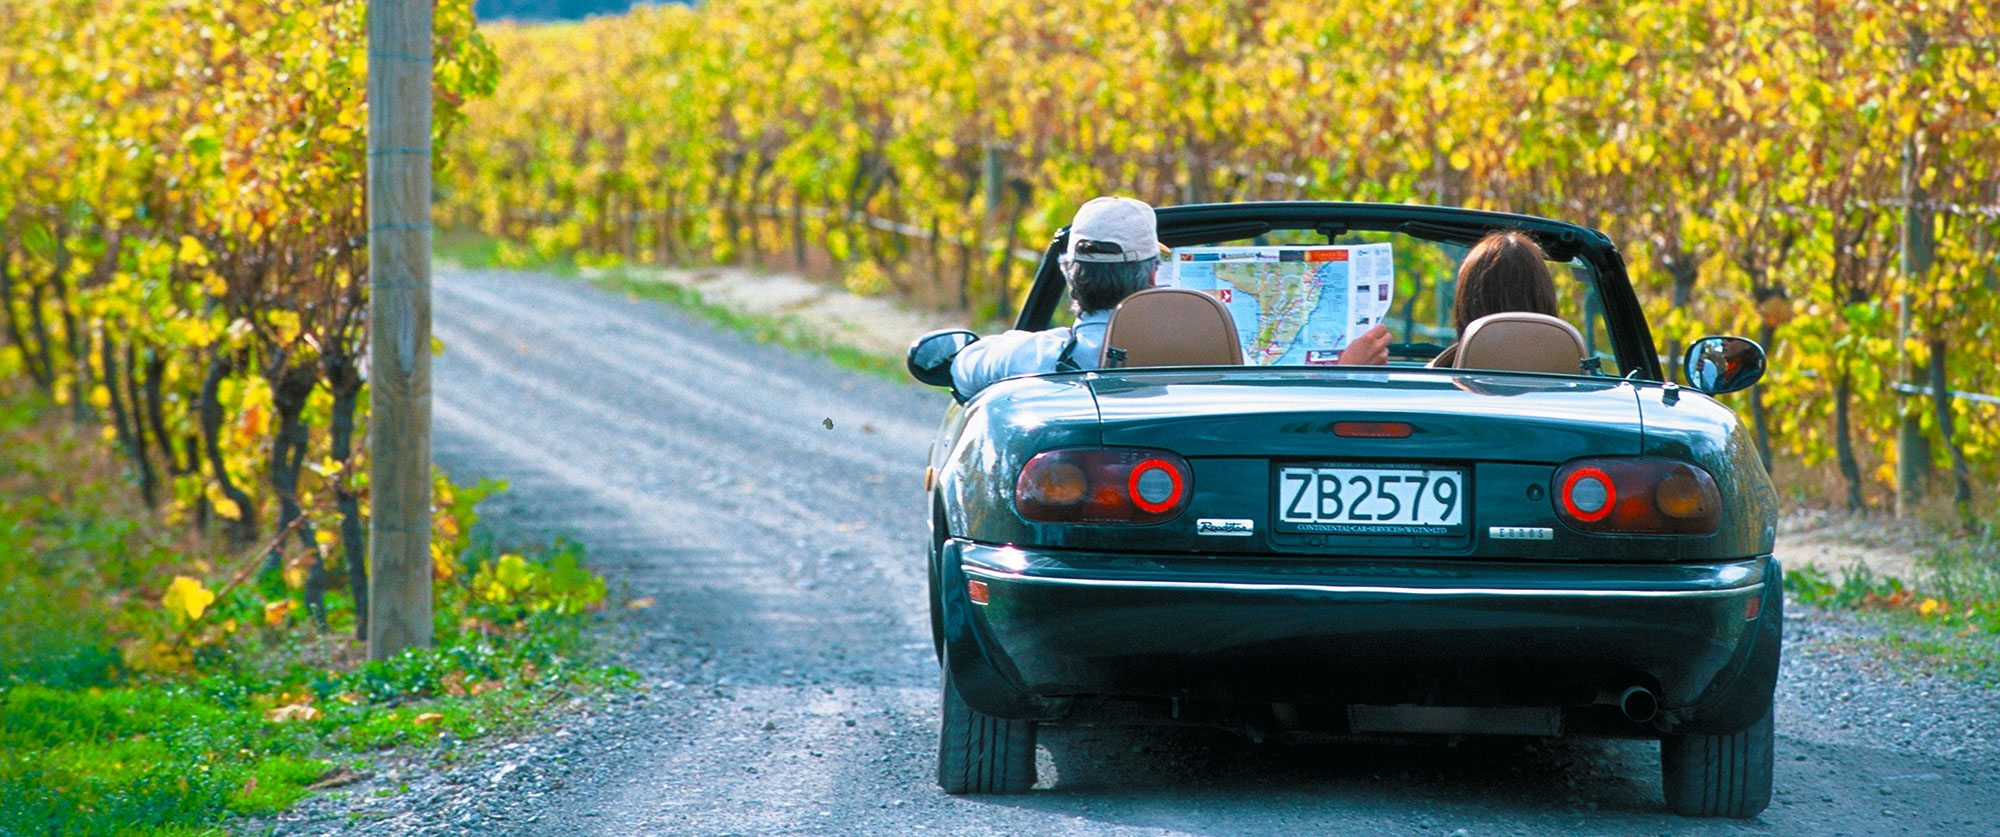 Things to do in New Zealand as a couple